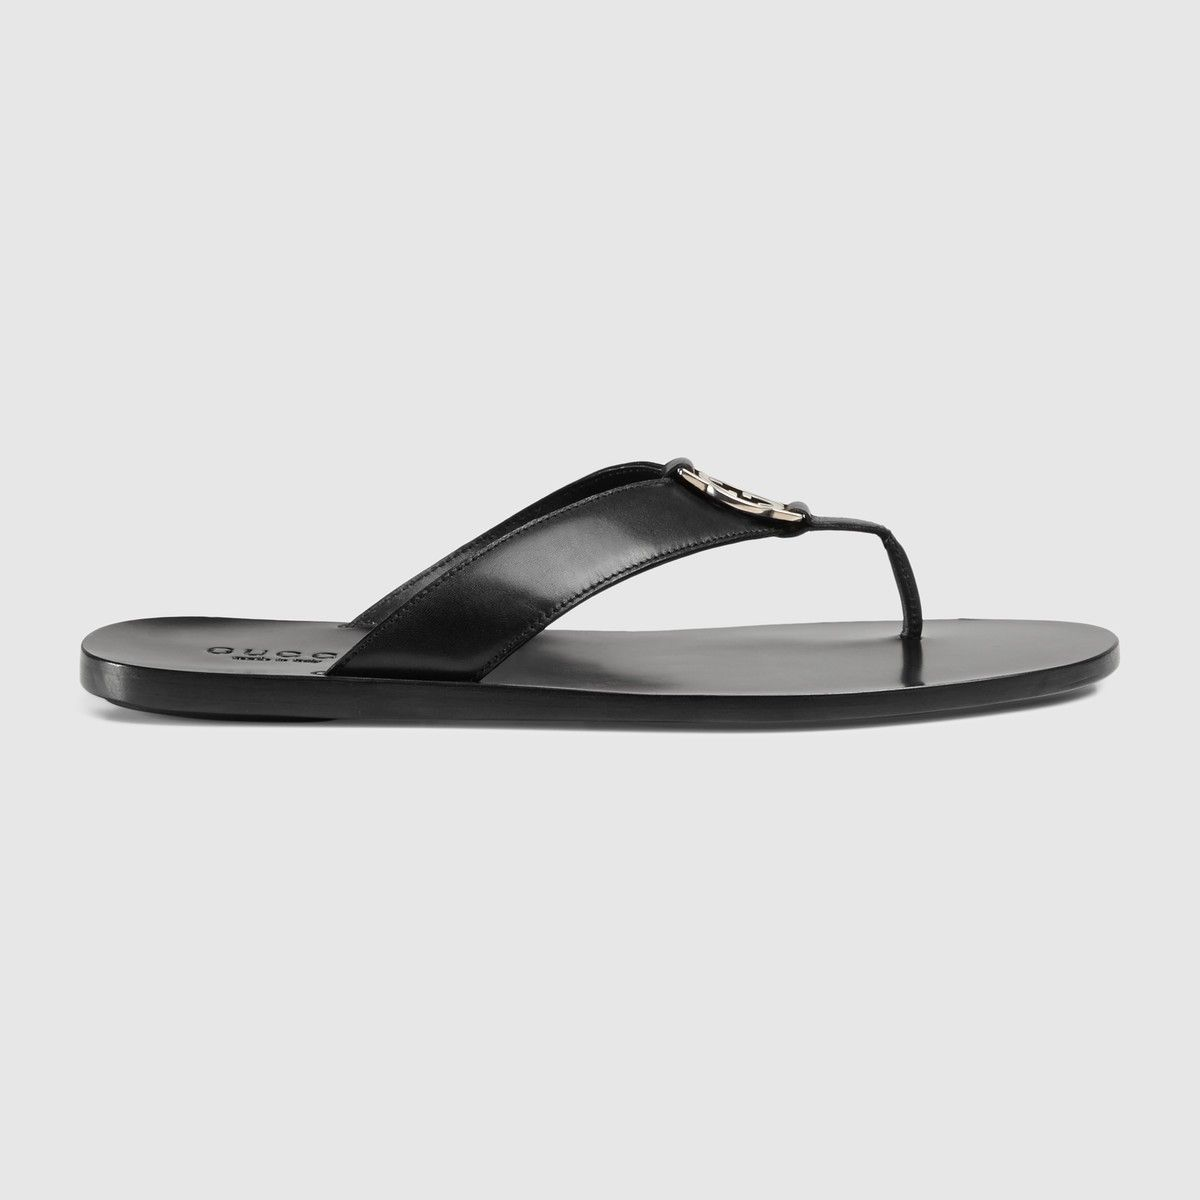 2dceb6a3e GUCCI Leather Thong Sandal - Black Leather. #gucci #shoes #all ...